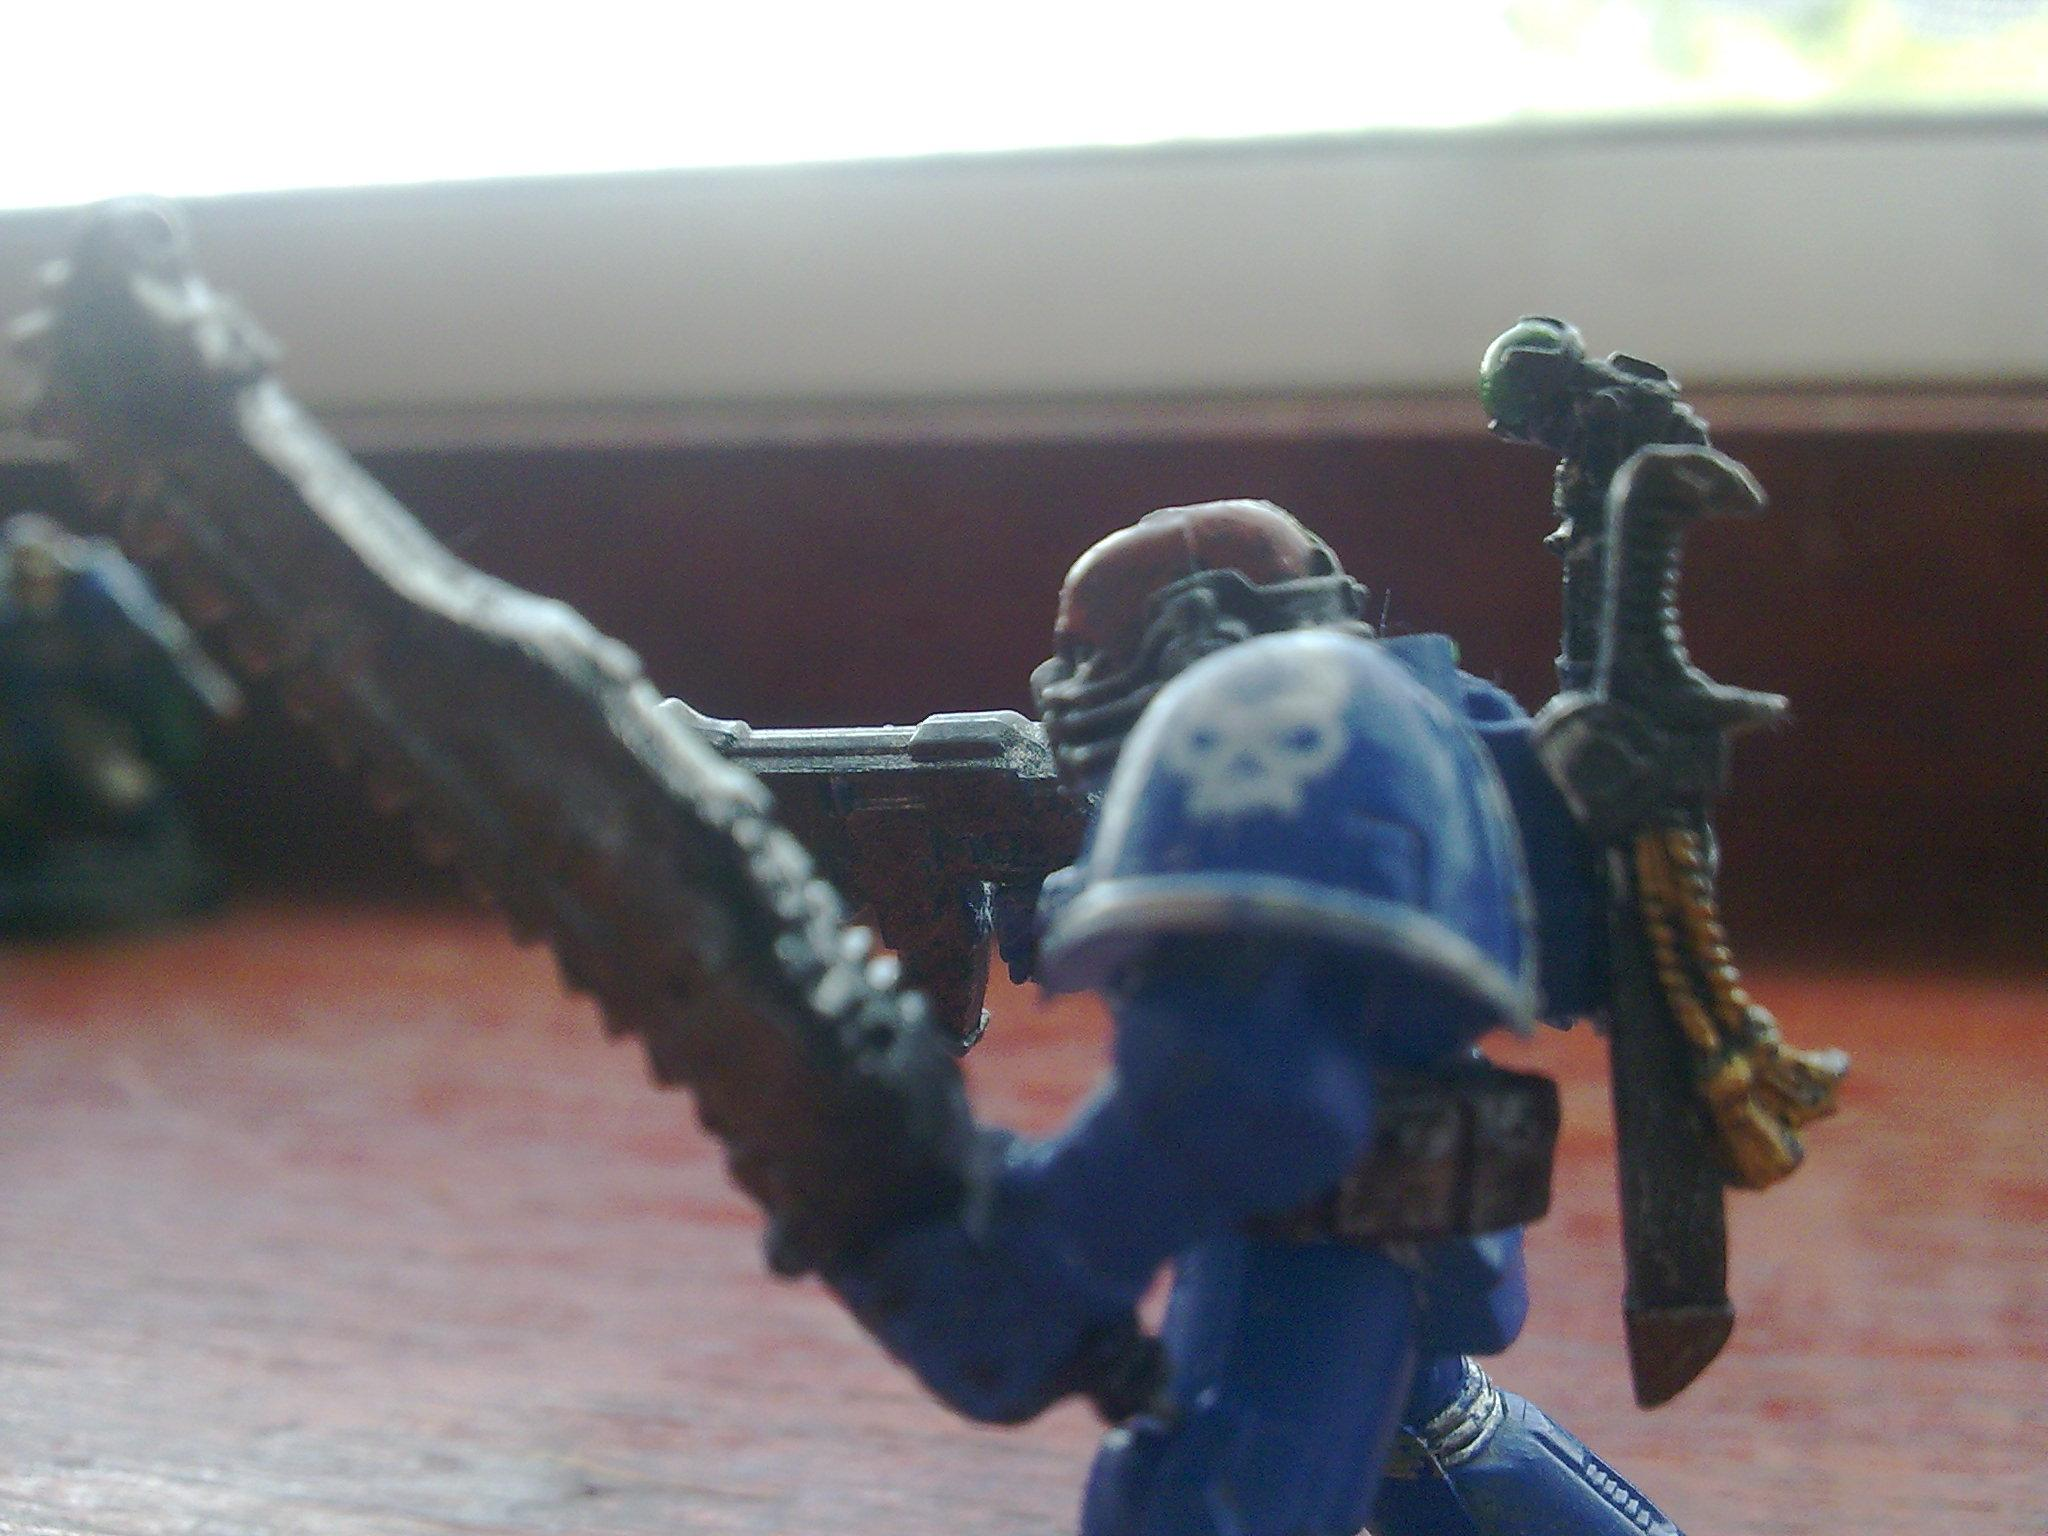 Space Marines, another view